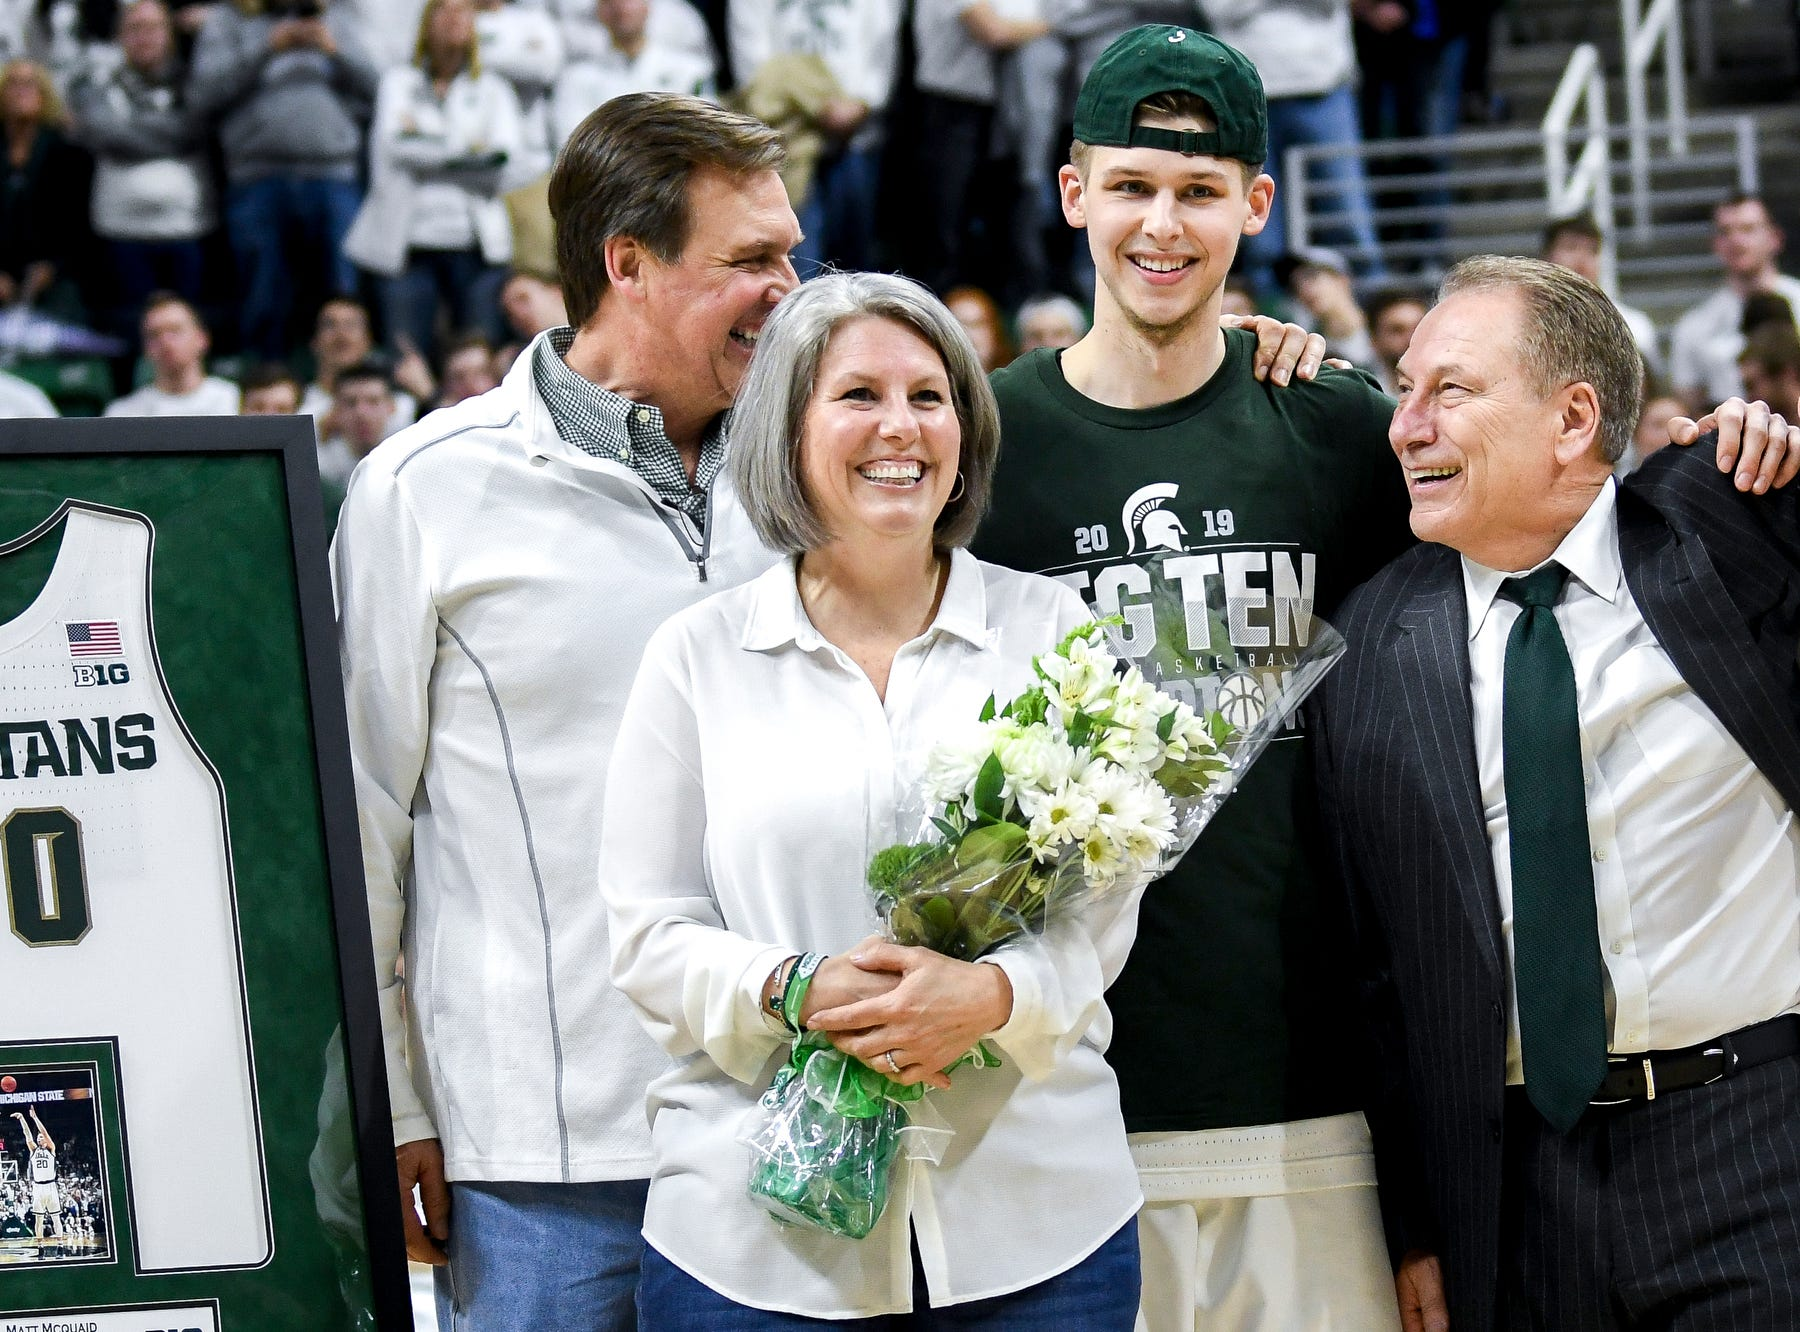 Michigan State senior Matt McQuaid and his family pose with Tom Izzo during senior night after beating Michigan on Saturday, March 9, 2019, at the Breslin Center in East Lansing.